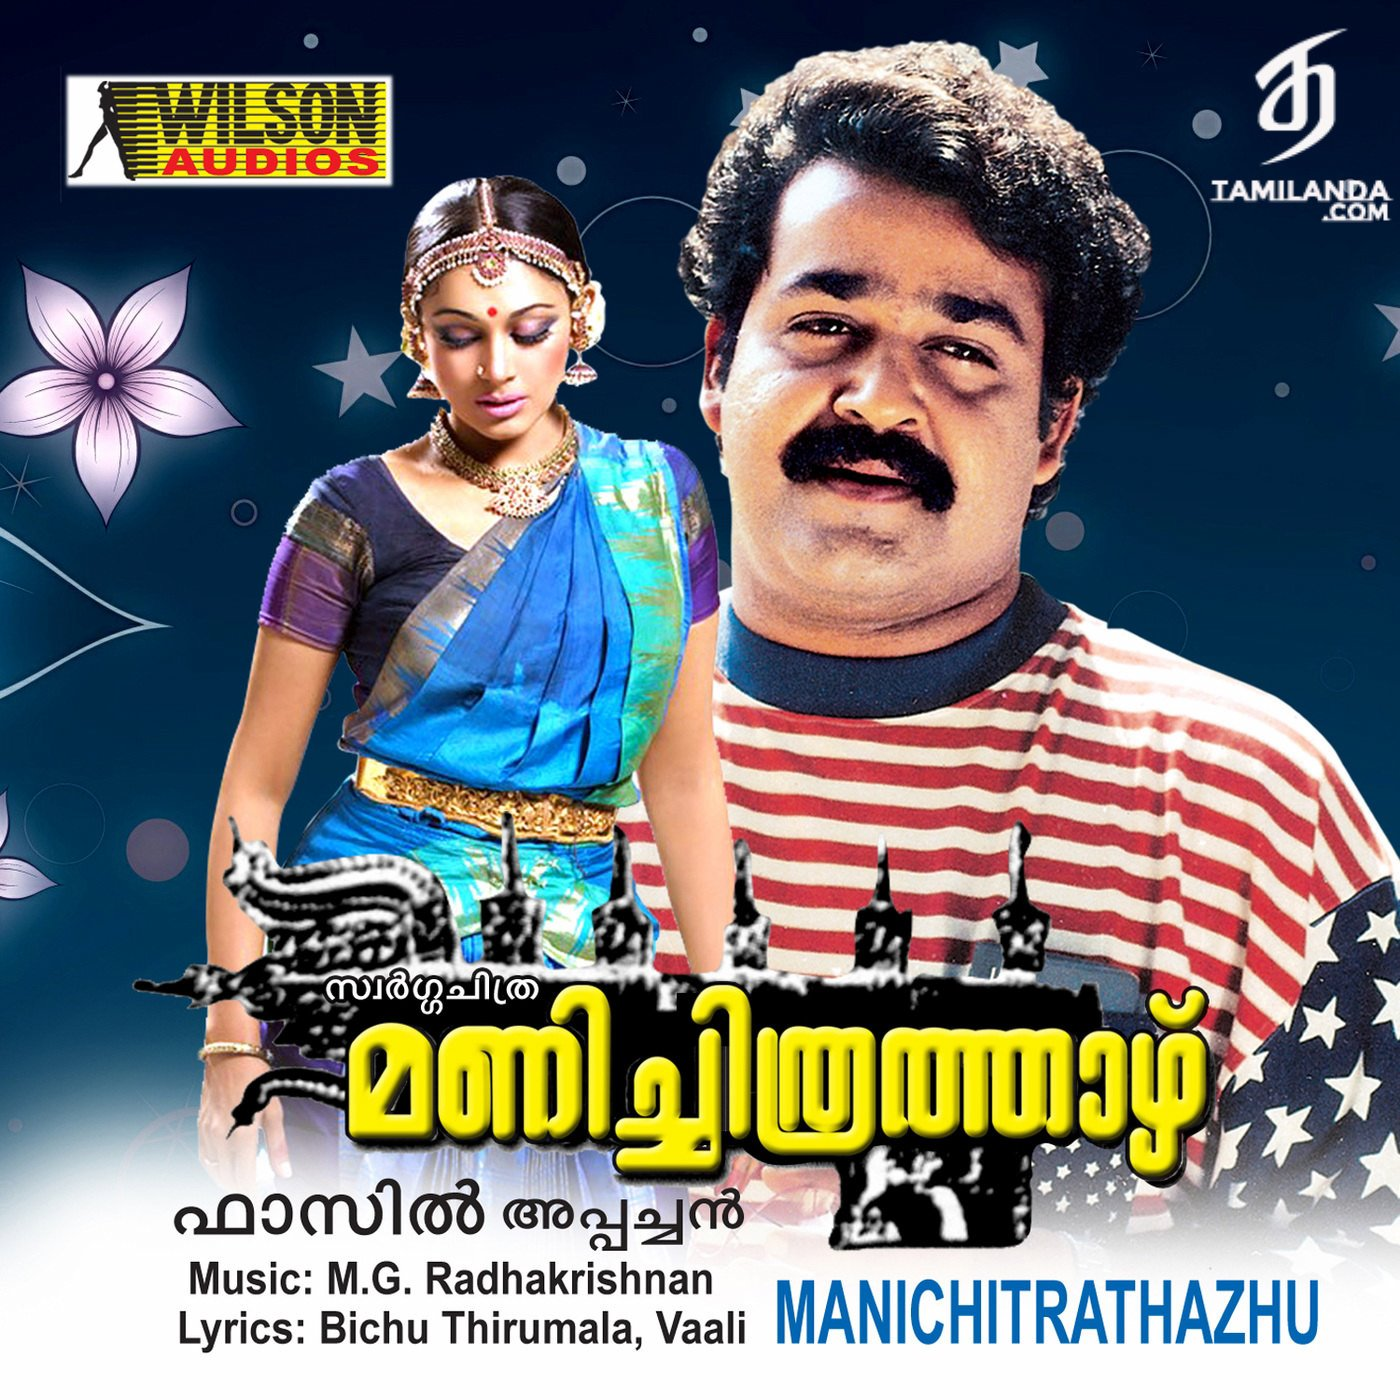 Manichitrathazhu FLAC Songs